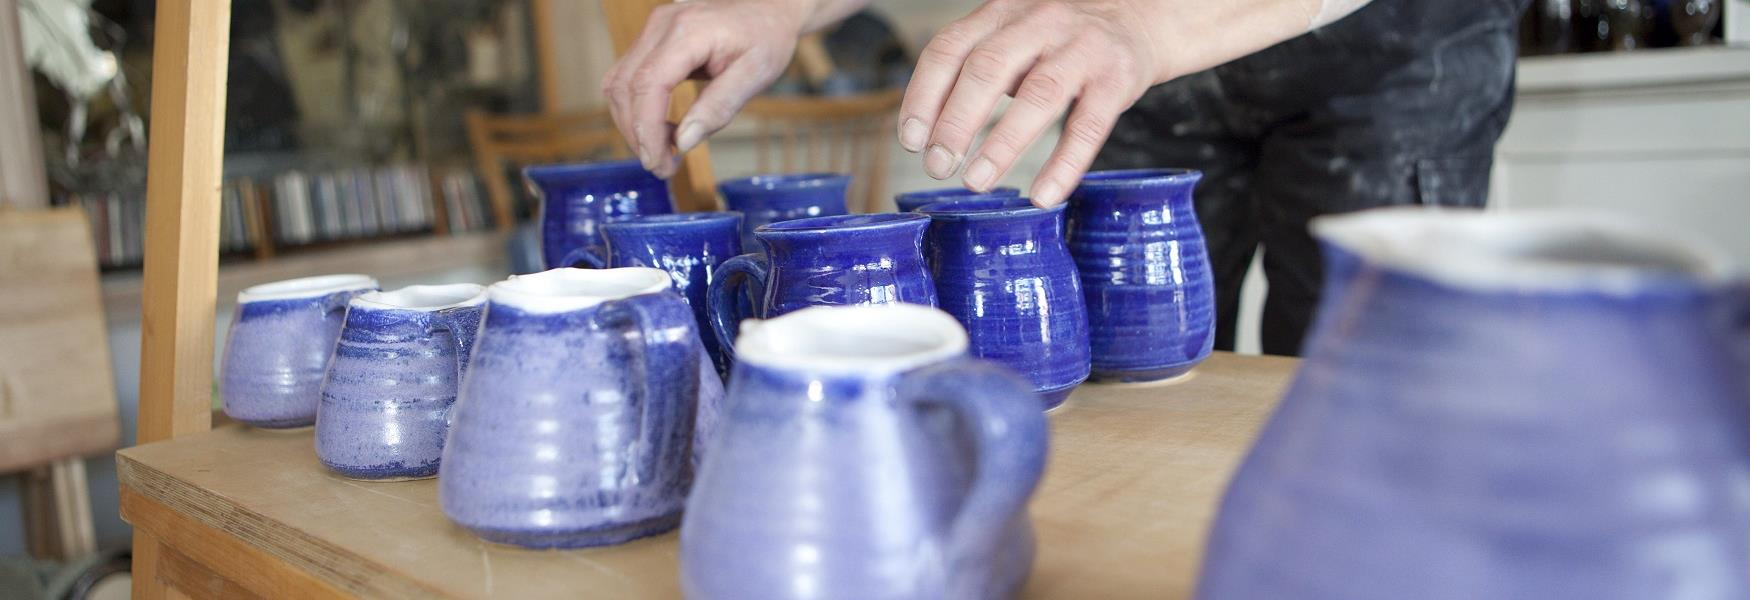 JMJ Pottery on Chatsworth Road, Chesterfield